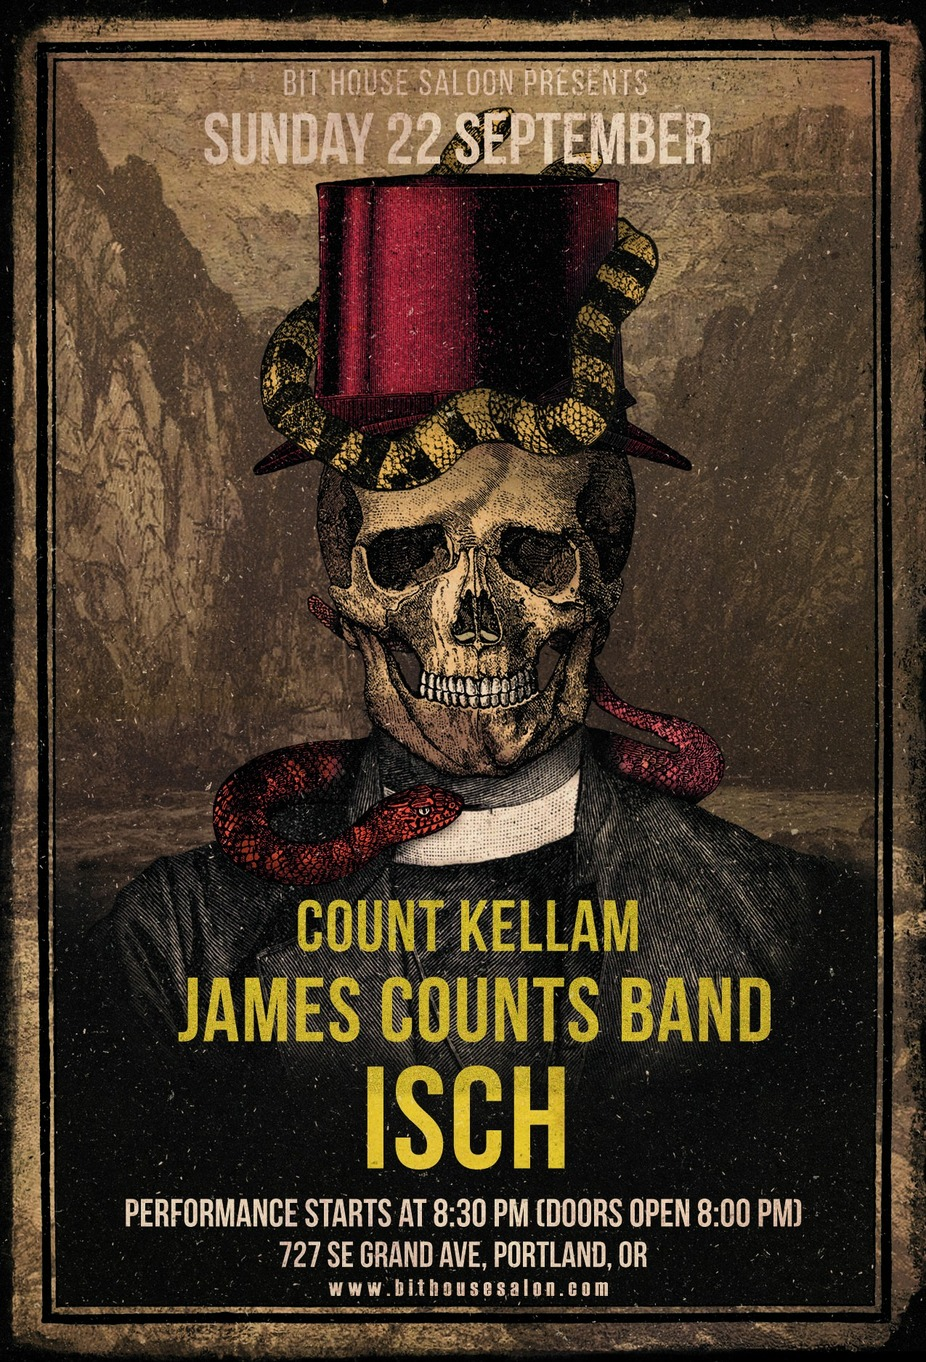 Count Kellam, James Counts Band, ISCH event photo